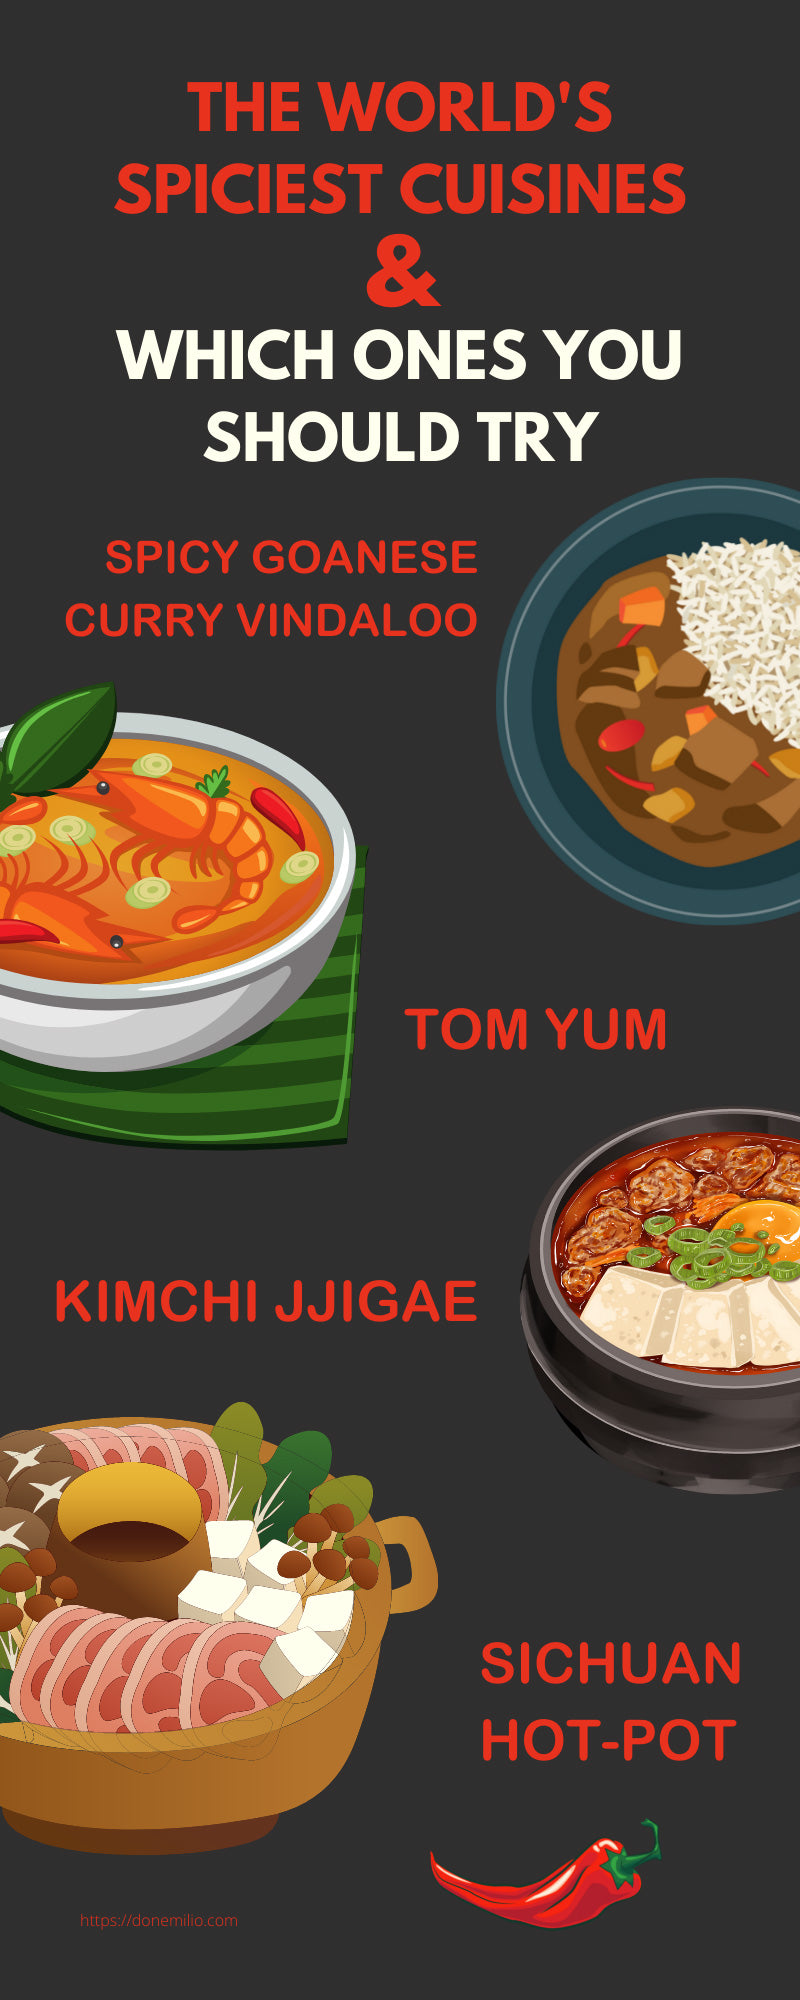 The World's Spiciest Cuisines and Which Ones You Should Try